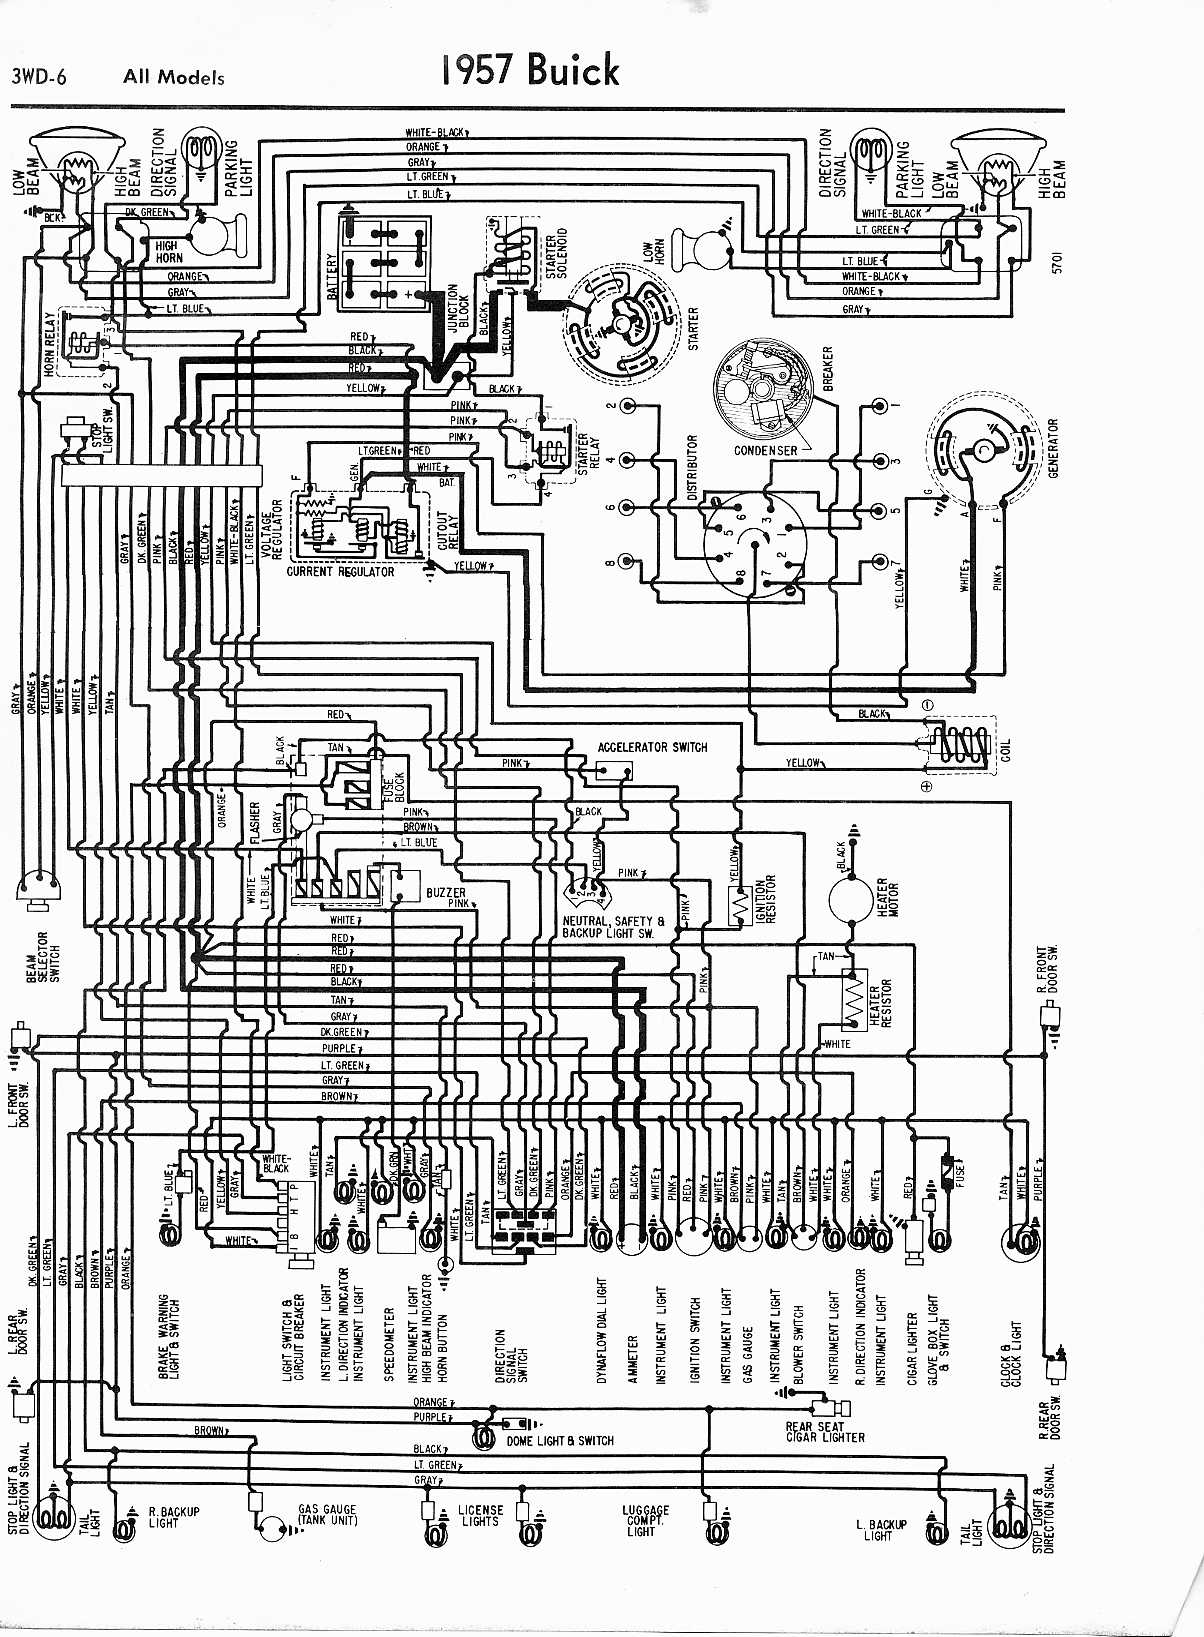 Pontiac 2 4 Engine Electric Diagram Content Resource Of Wiring 1997 Oldsmobile Aurora 1957 Buick Gas Pedal Start Problem 24 Liter Mitsubishi 2000 Alero